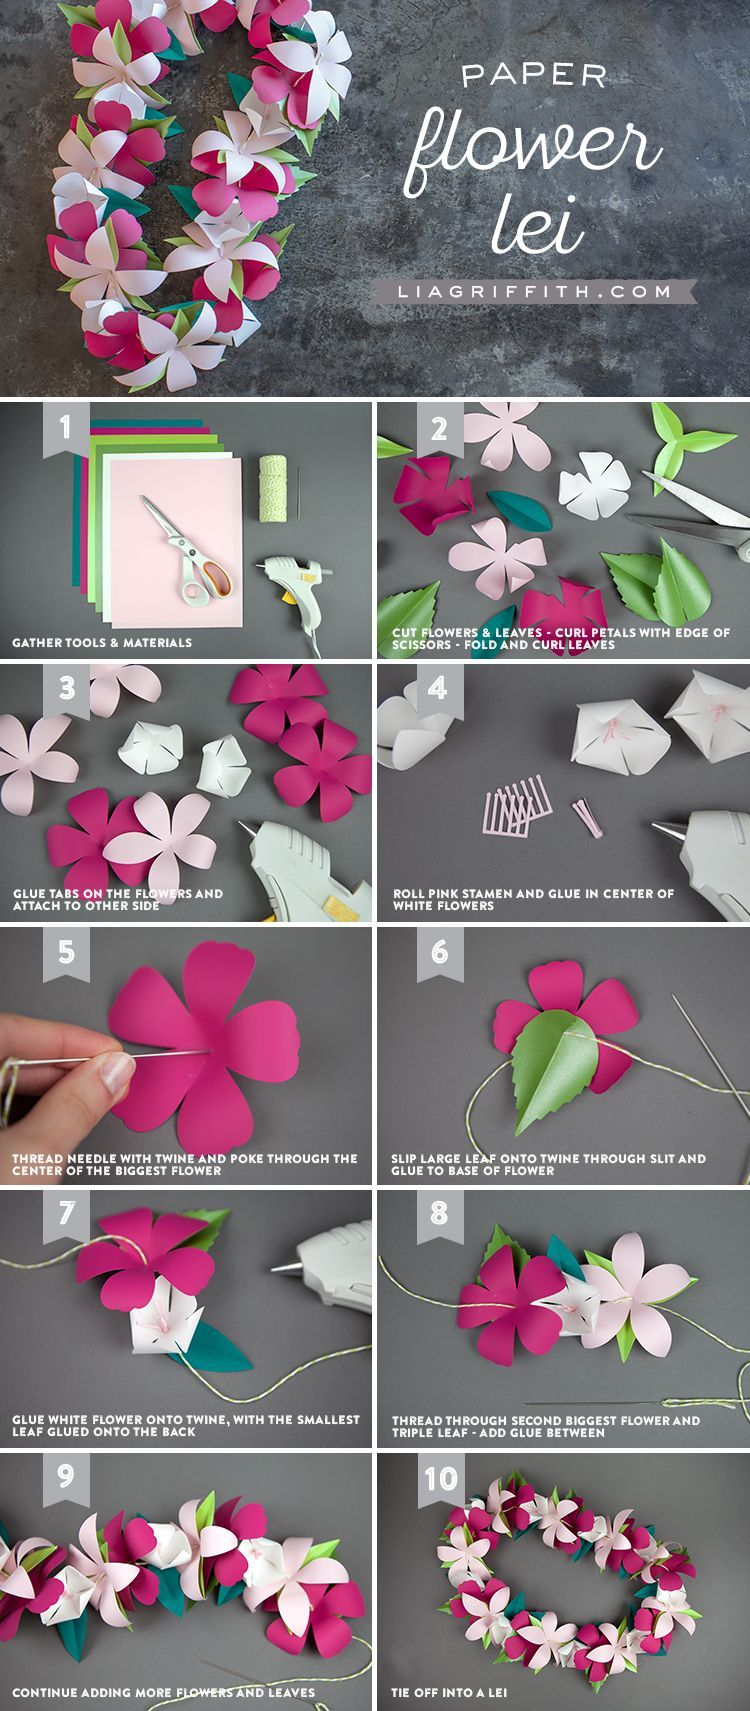 Paper Flower Lei Handmade Pinterest Flower Lei Paradise And